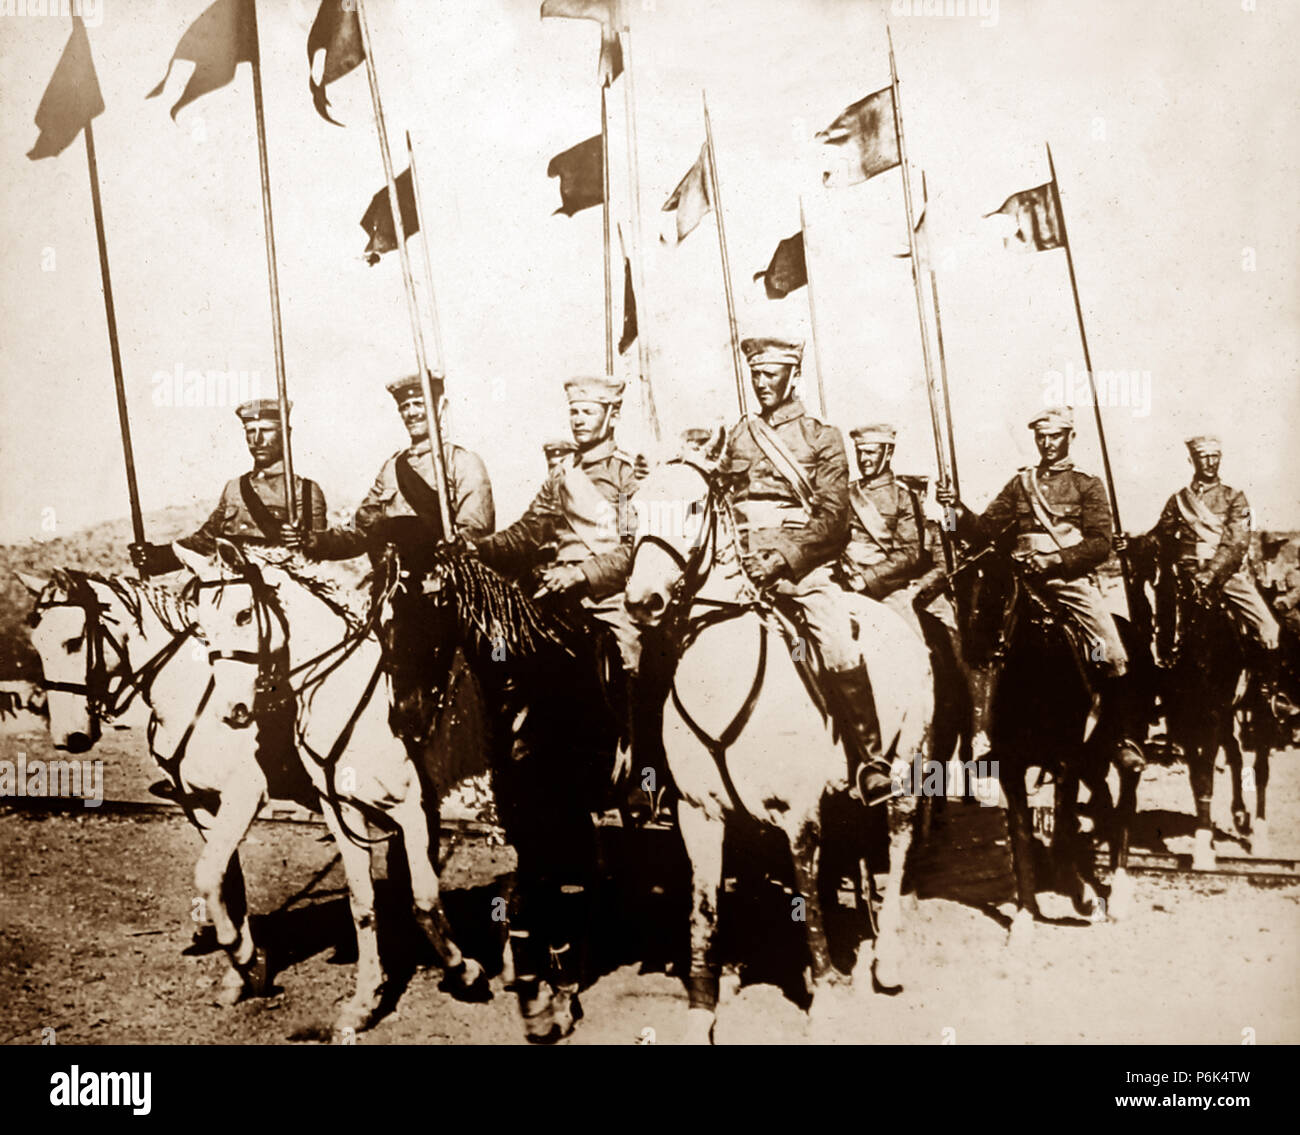 German Cavalry 'Uhlans', WW1 - Stock Image